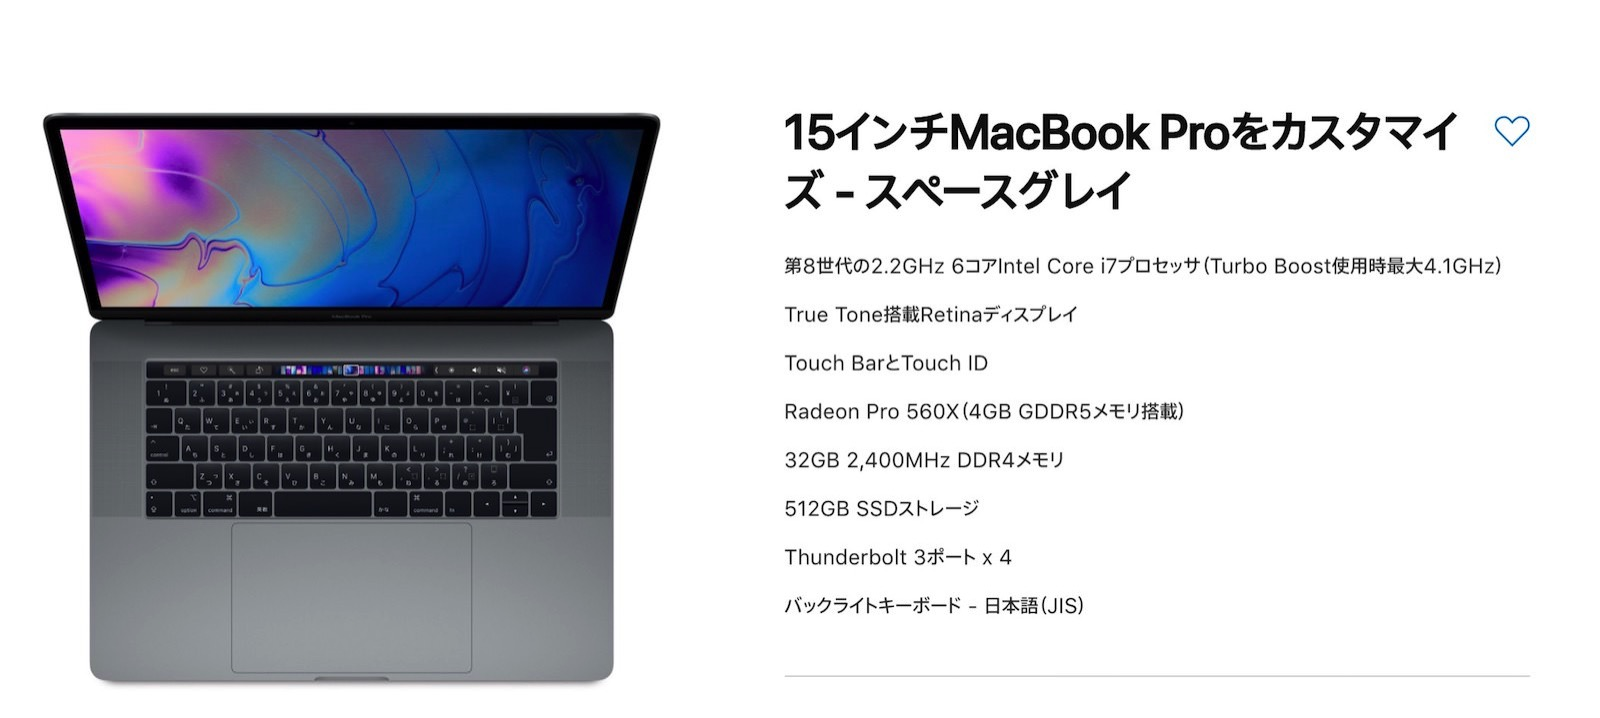 Best-Custom-Model-for-MBP2018-15.jpg